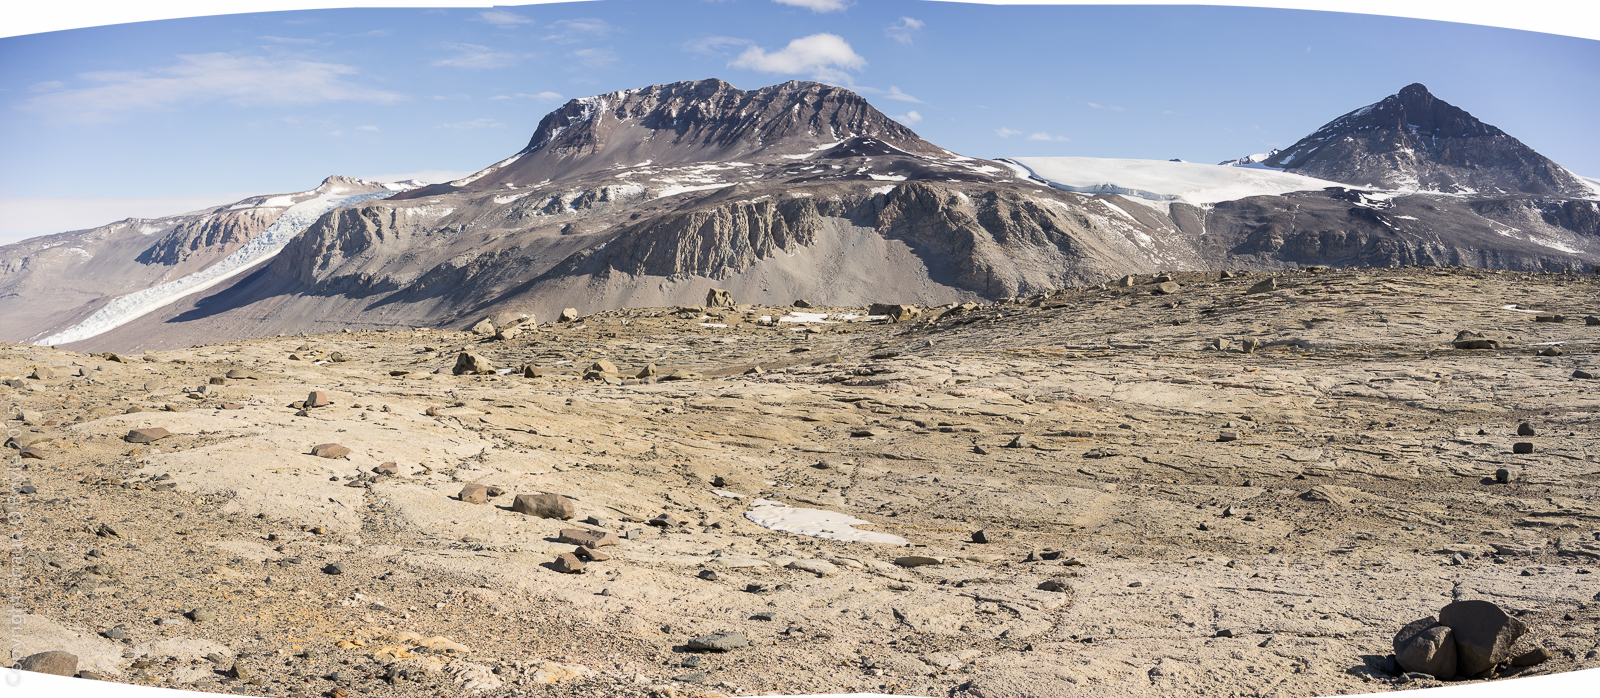 Wind scoured surface, ventifacts, mountain on right is the Matterhorn.